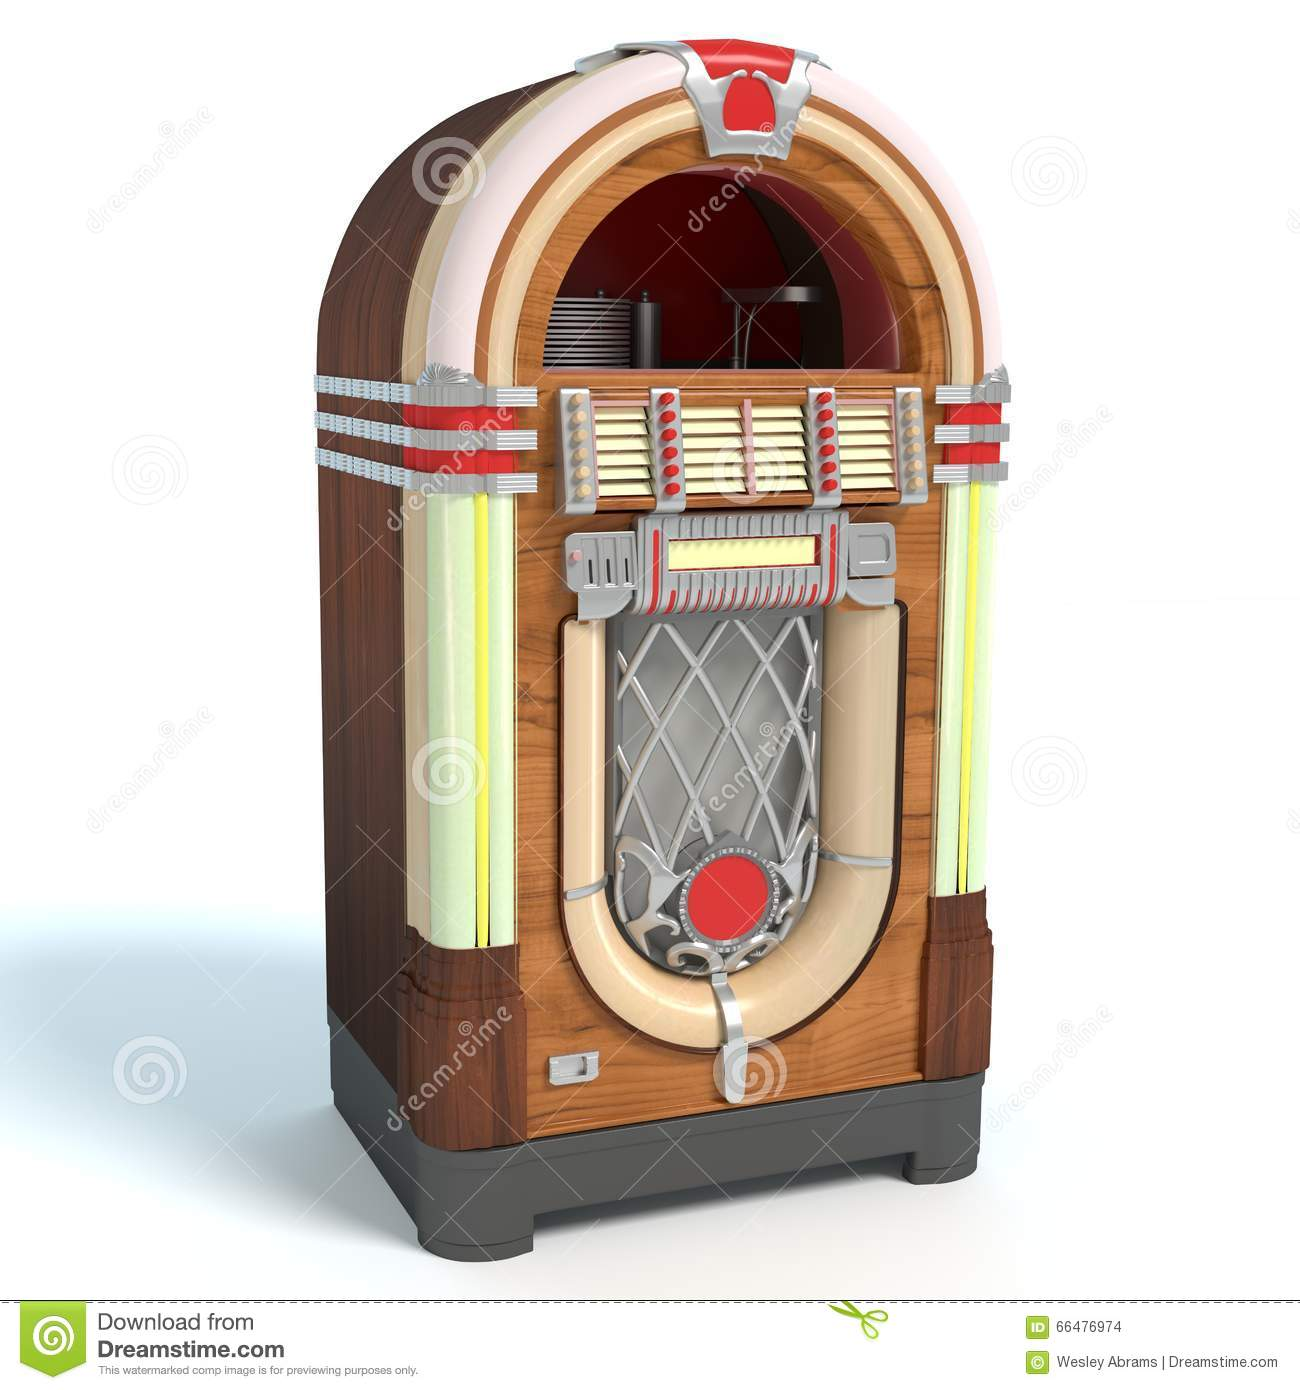 Line Art Jukebox : Juke cartoons illustrations vector stock images